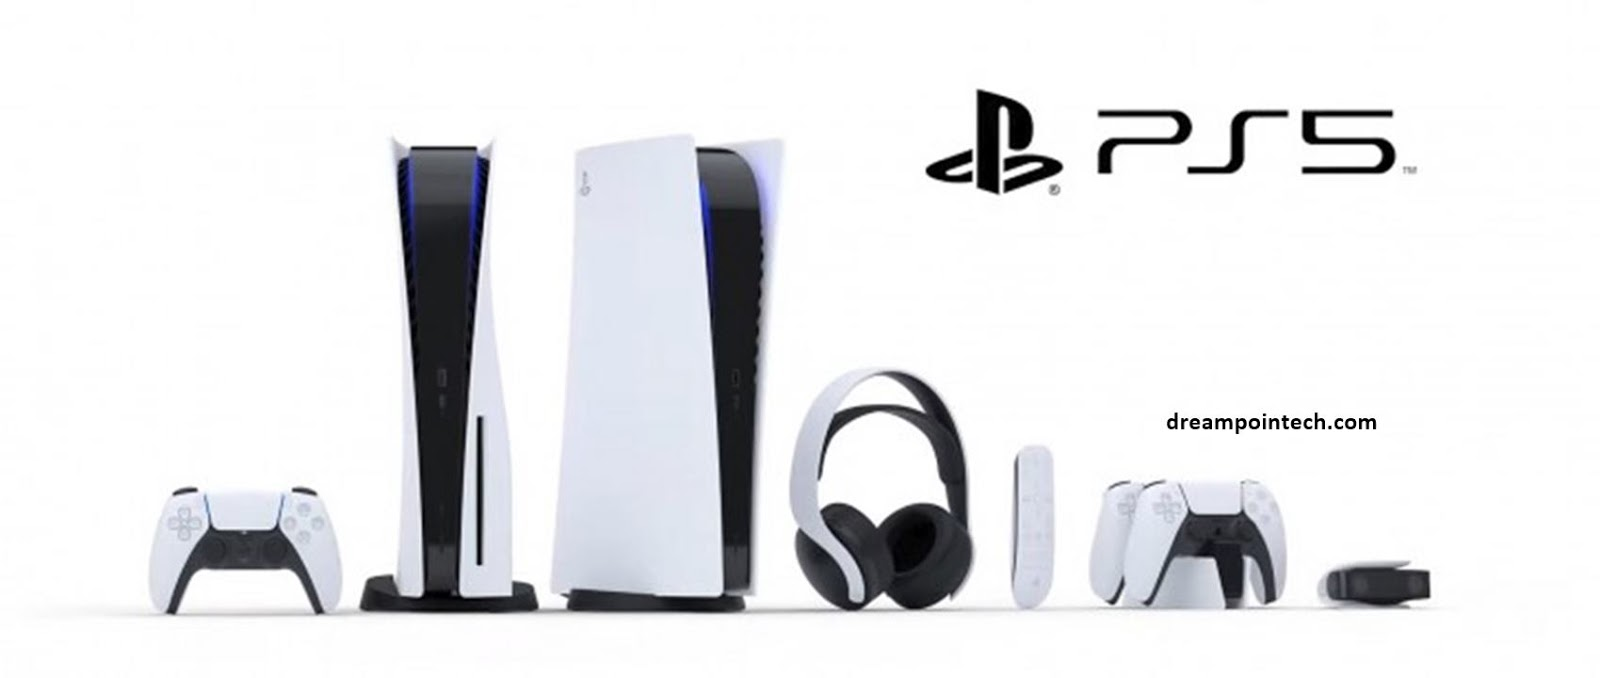 Sony PlayStation 5 (2020): Specs, Review & Price in Cameroon